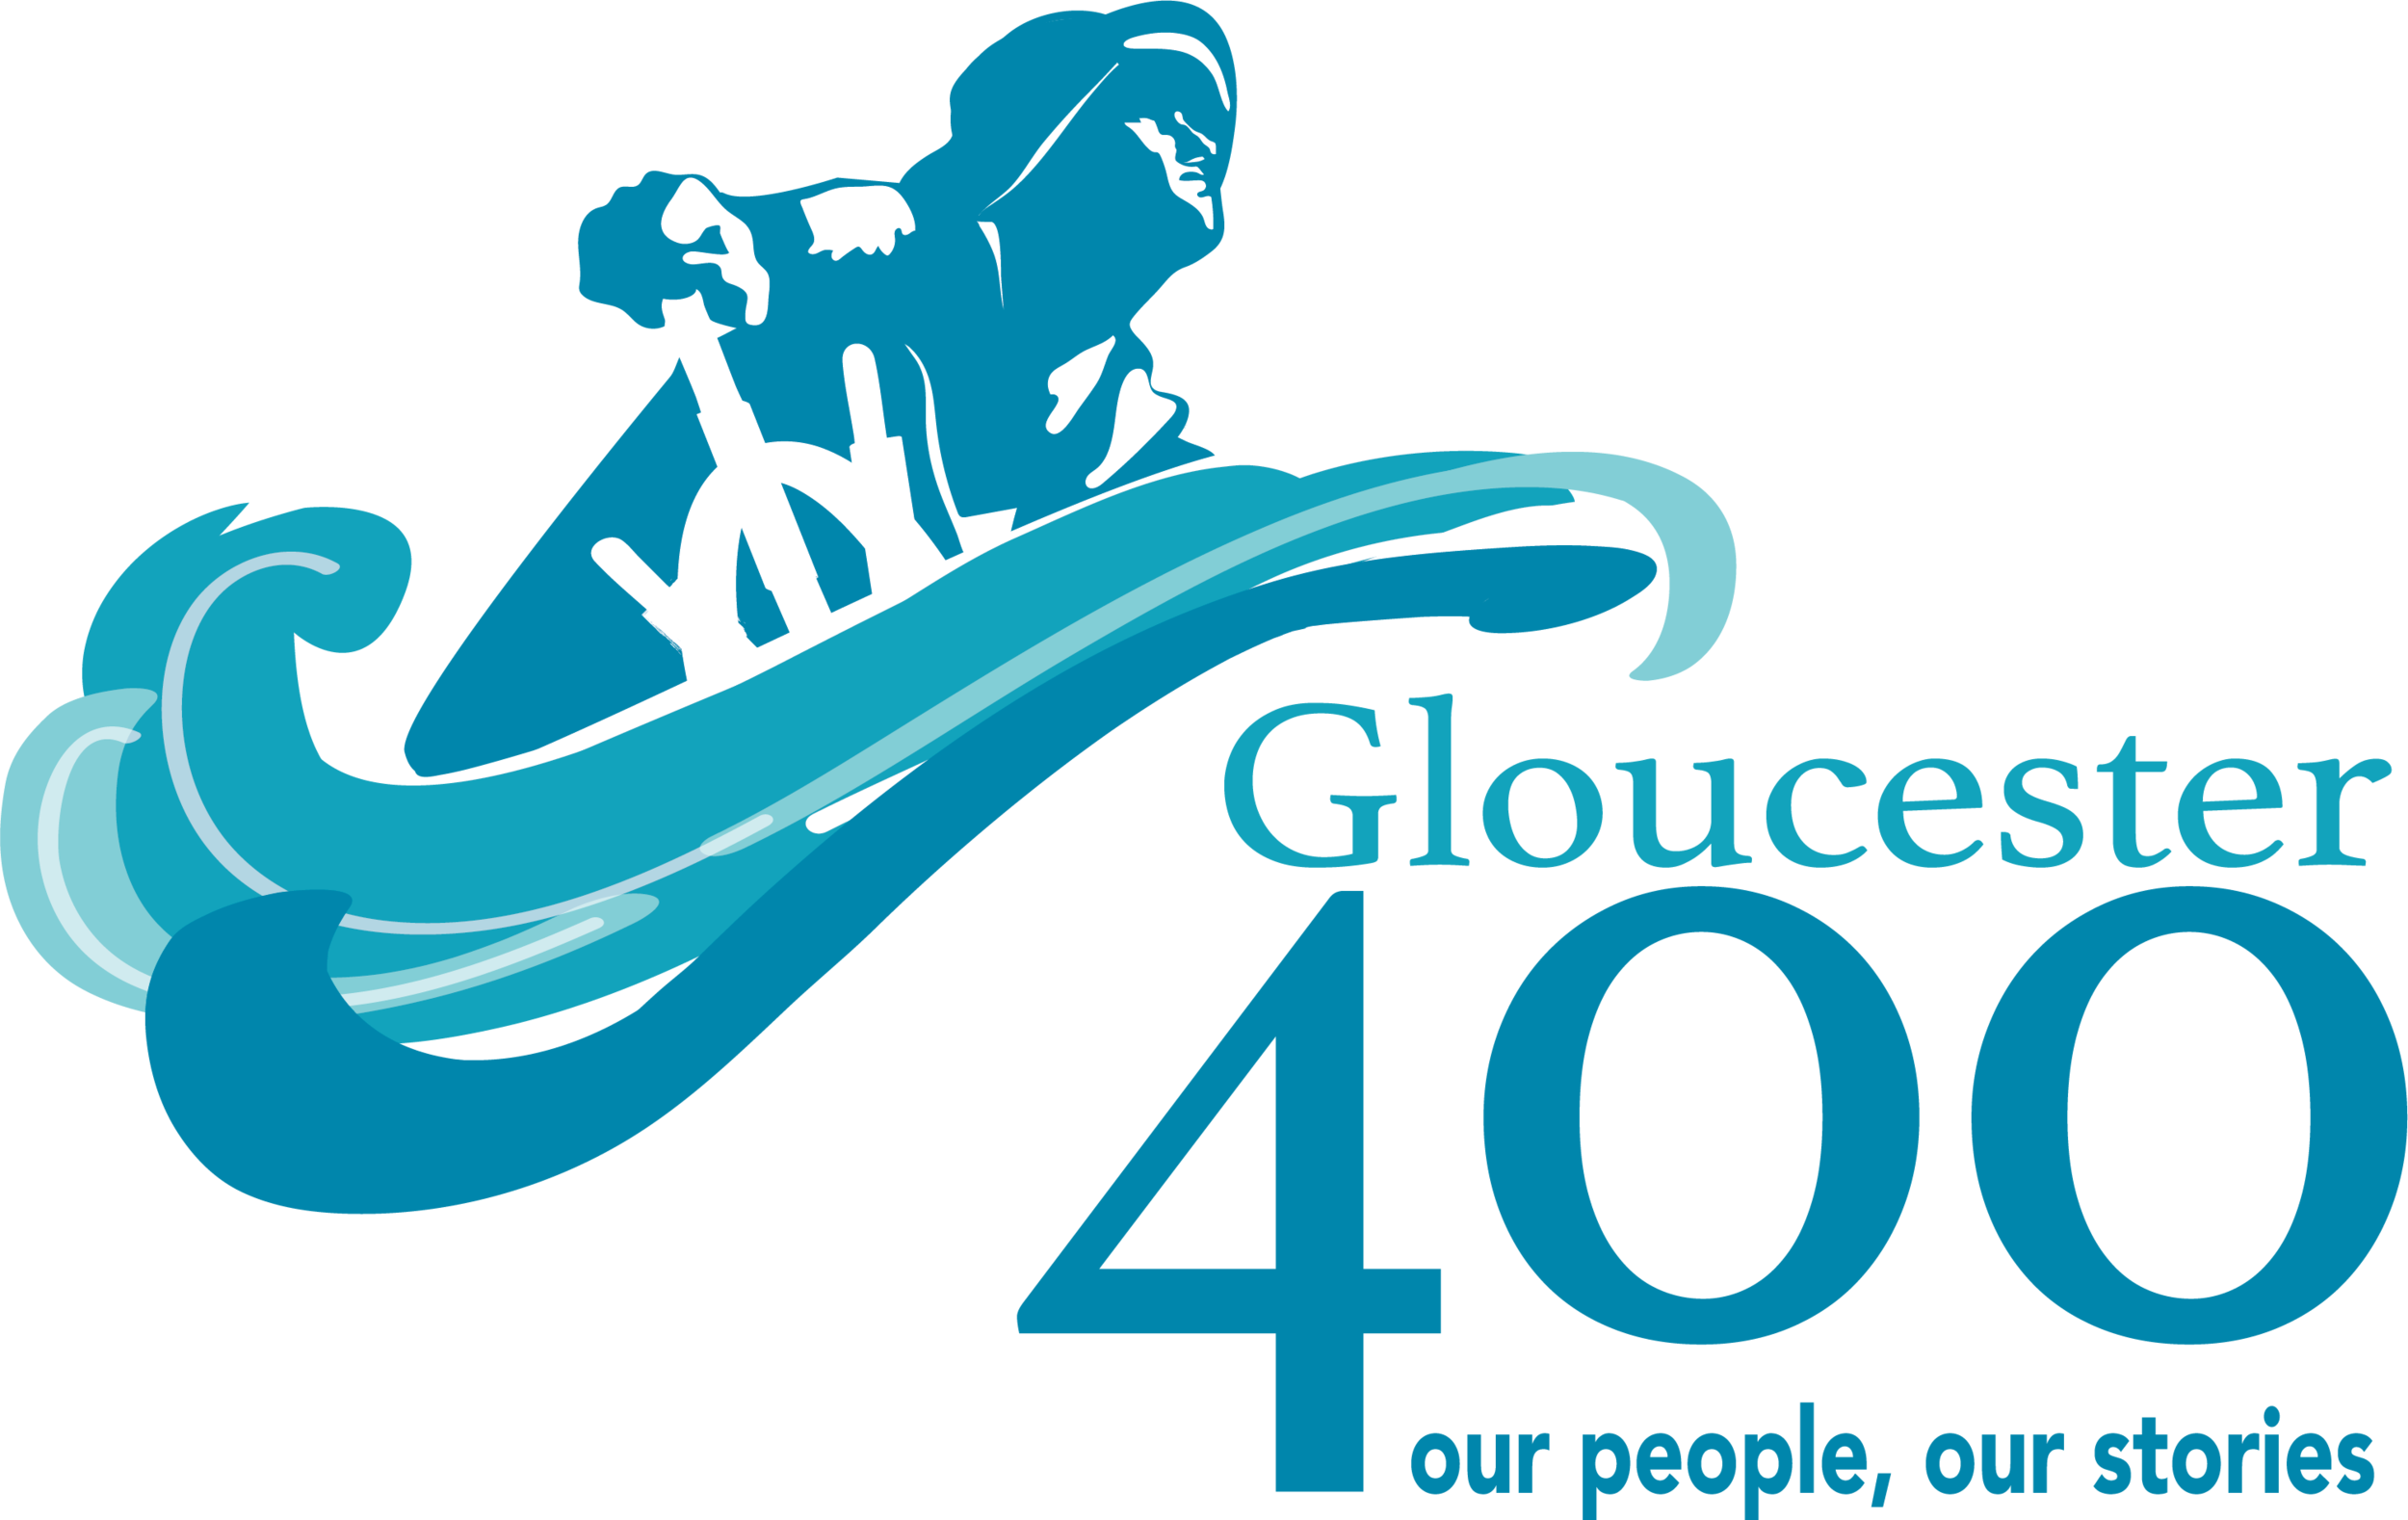 Glo400Logo.png